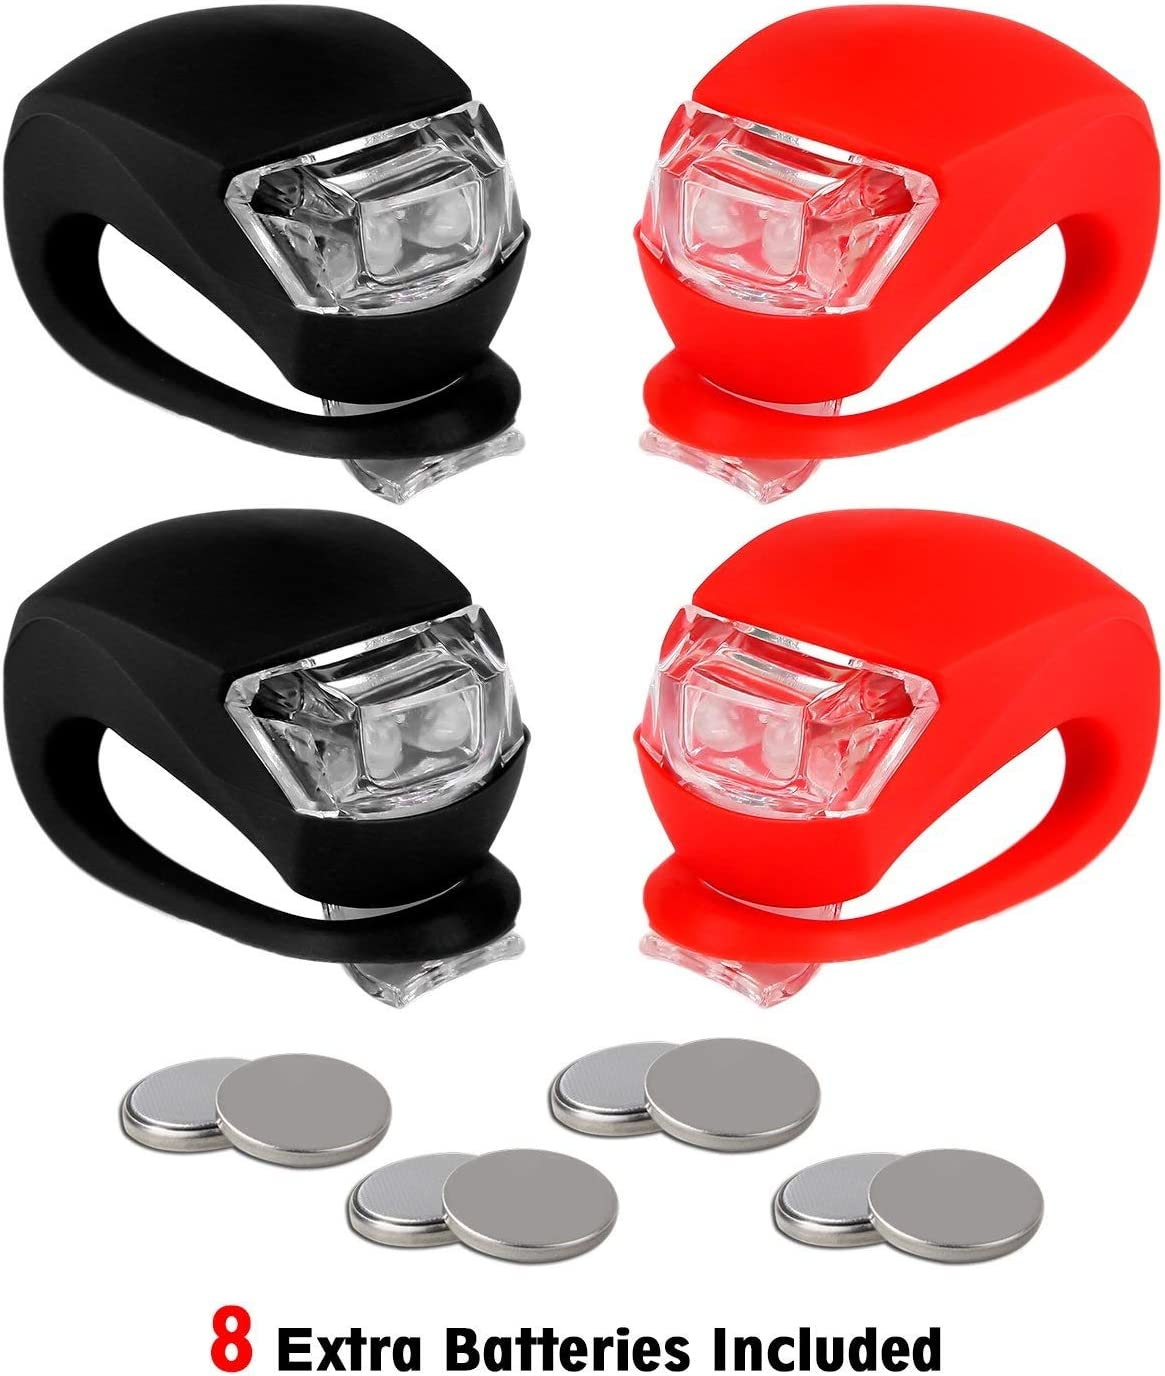 REFUN Bicycle Light - Front and Rear Silicone LED Bike Light Set - High Intensity Multi-Purpose Water Resistant Headlight - Taillight for Cycling Safety,Batteries Included,4 Pack